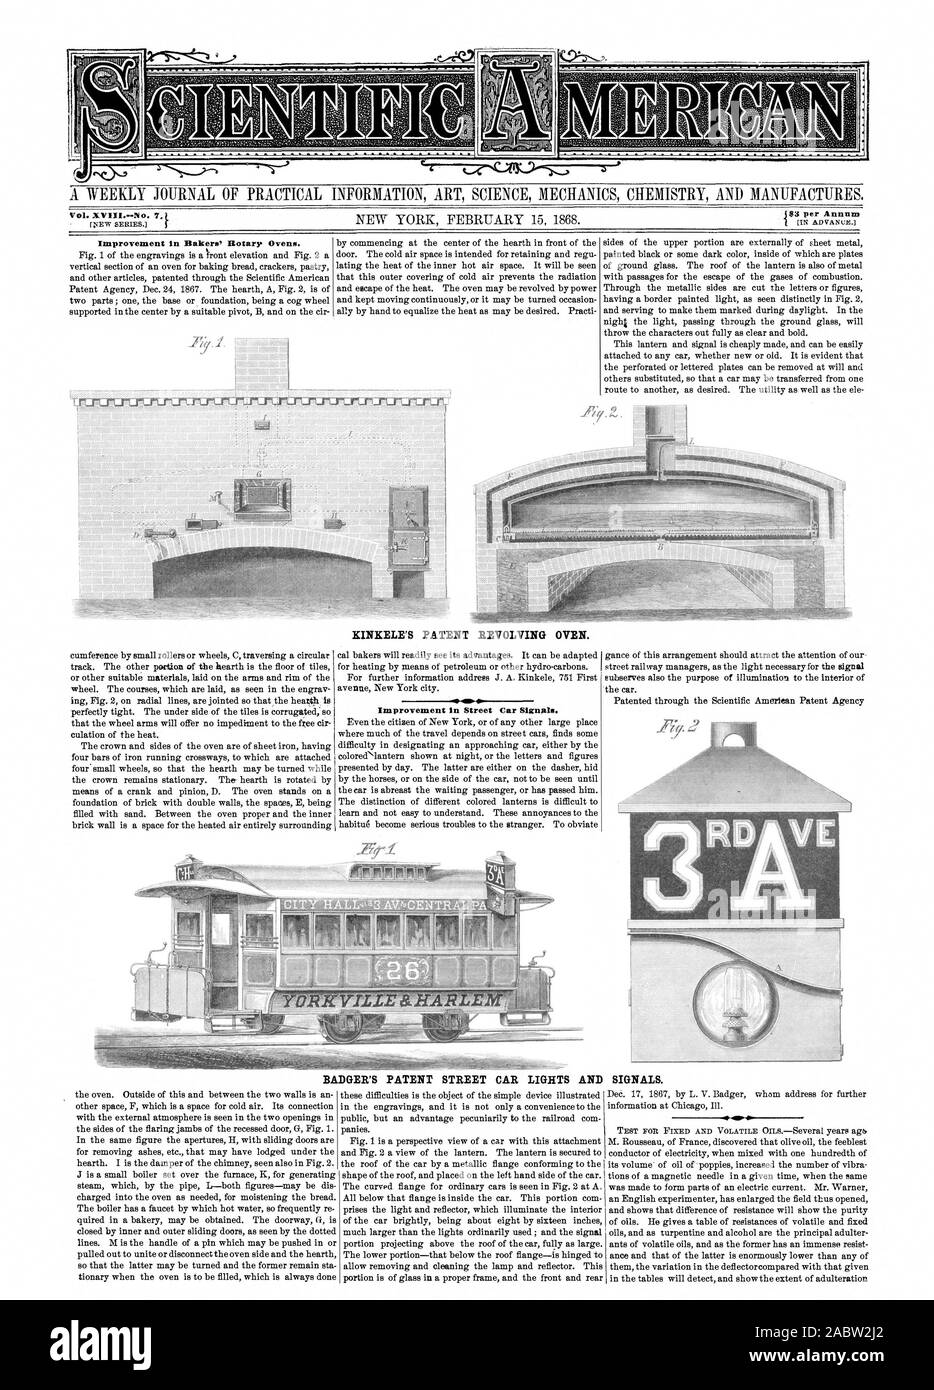 Vol. XVIII.--No. 7. MS per Annum MERMALEkti KINKELE'S PATENT REVOLVING OVEN. Improvement in Street Car Sigu. BADGER'S PATENT STREET CAR LIGHTS AND SIGNALS., scientific american, 1868-02-15 Stock Photo